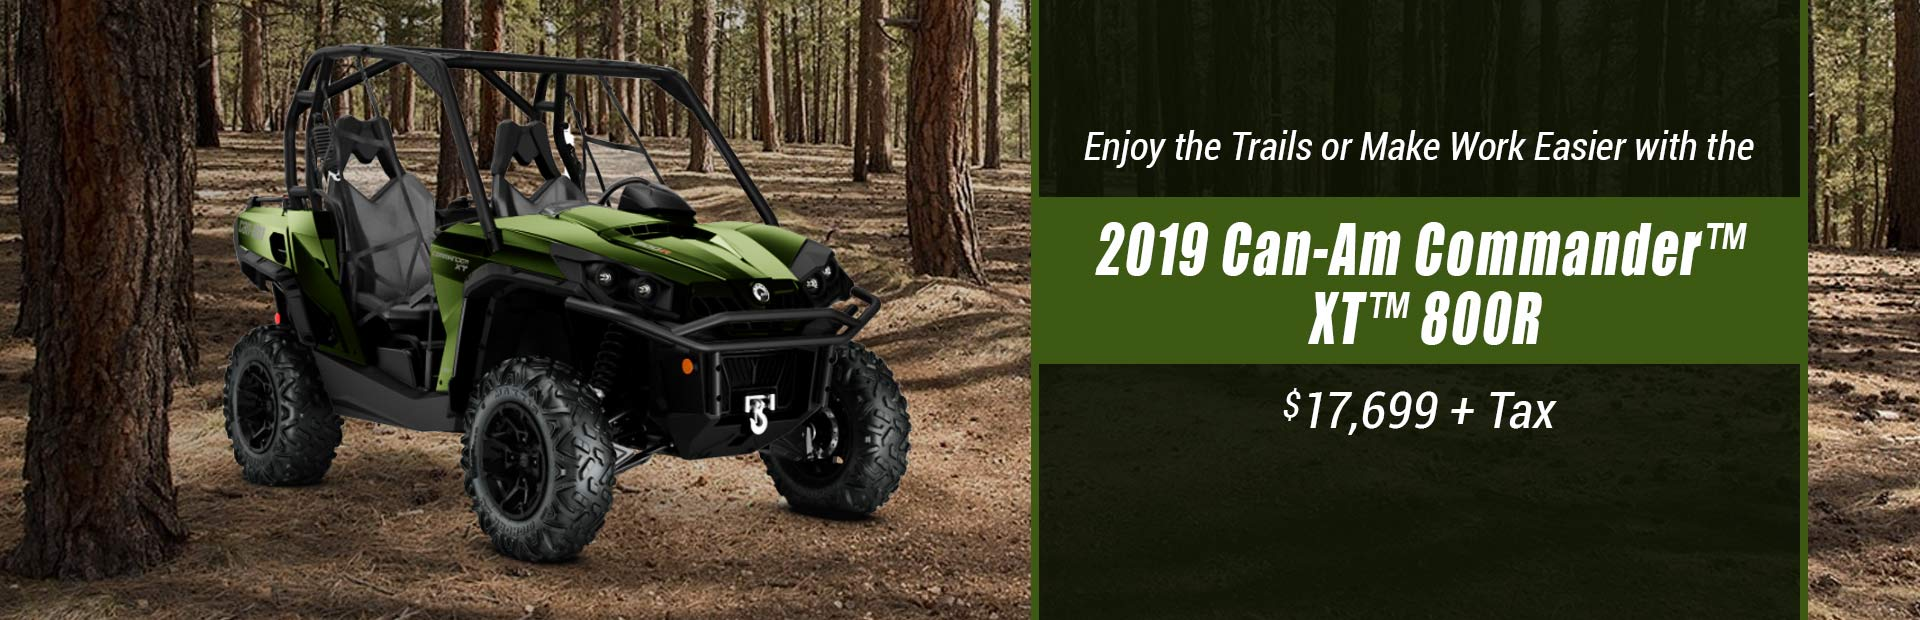 Get the 2019 Can-Am Commander™ XT™ 800R for $17,699 + tax!